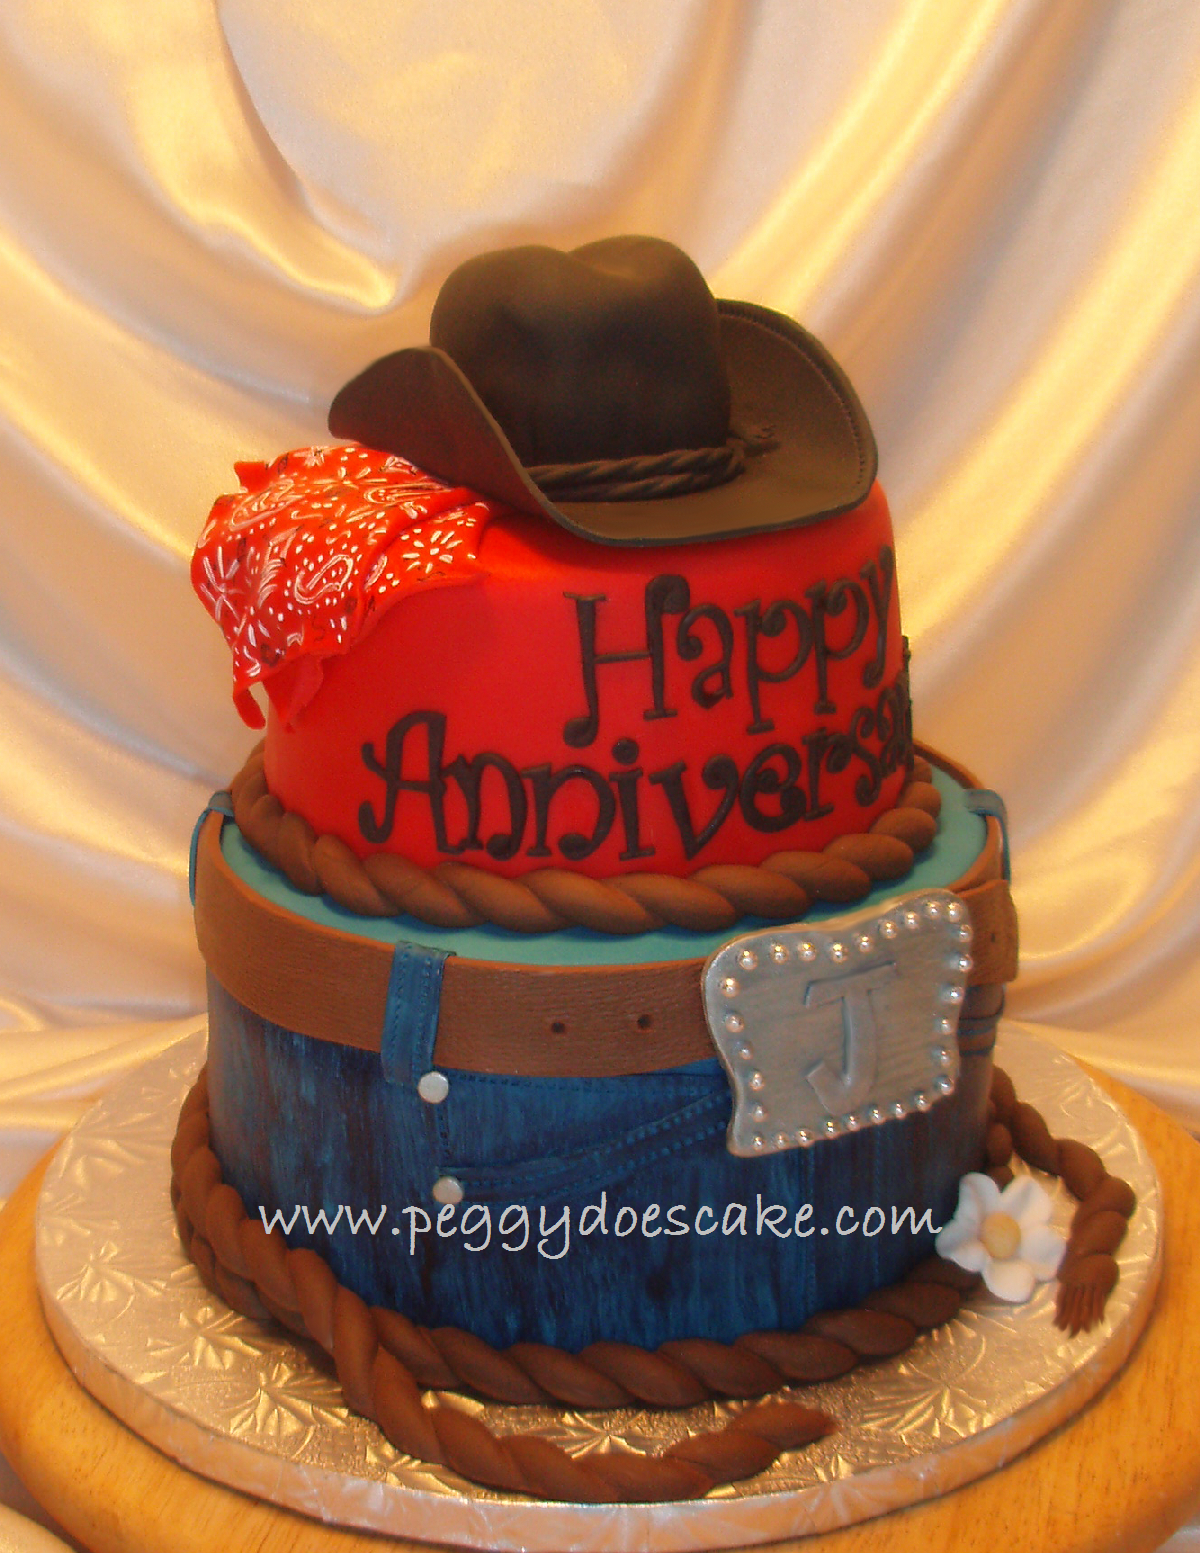 Peggy Does Cake Western Themed Anniversary Cake Click Photos To